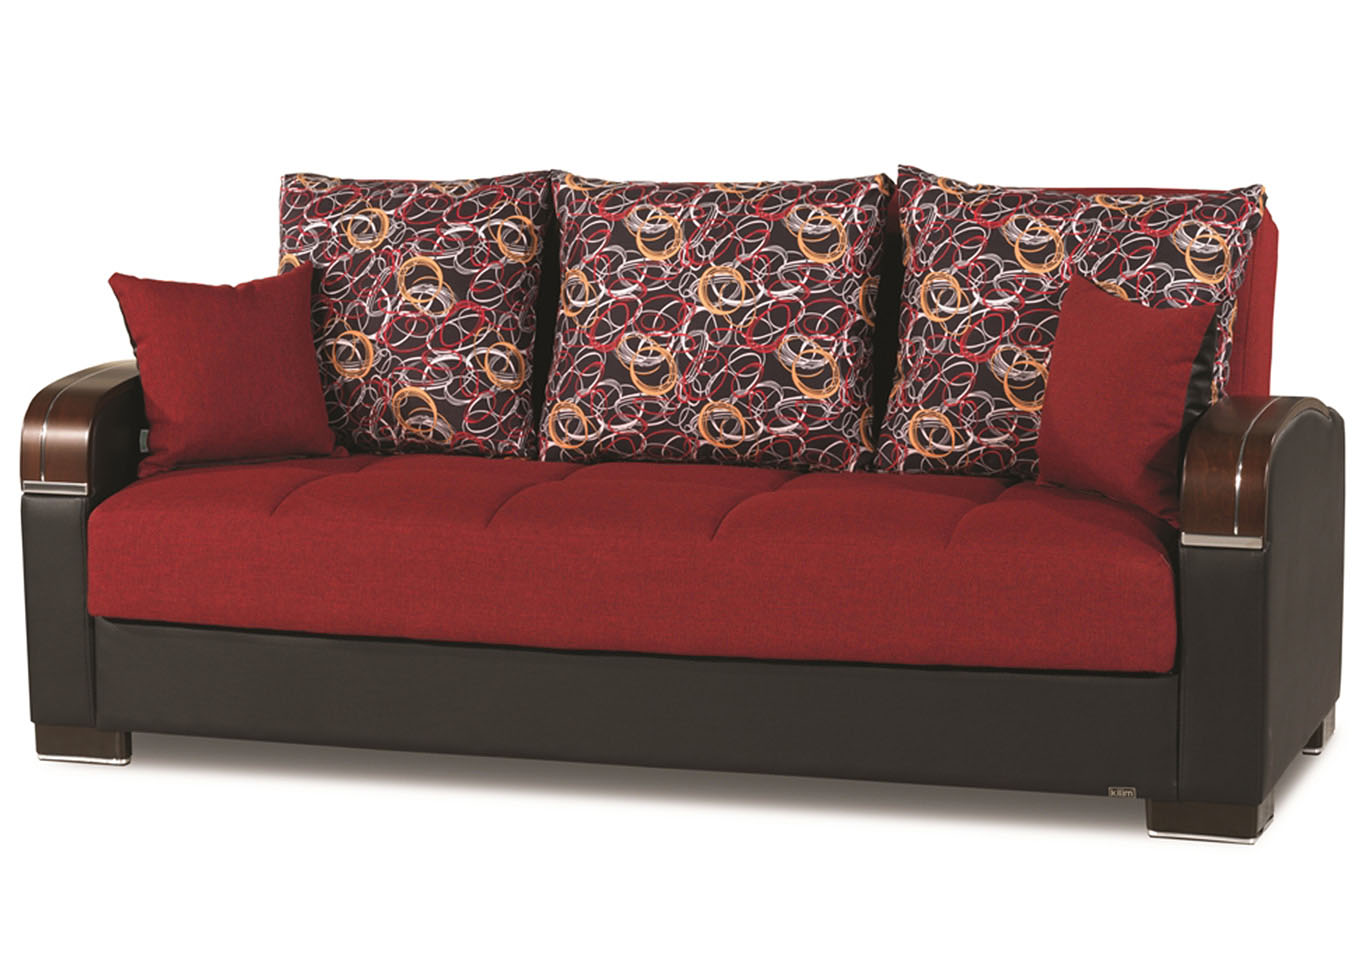 Mobimax Red Polyester Sofabed,CasaMode Functional Furniture